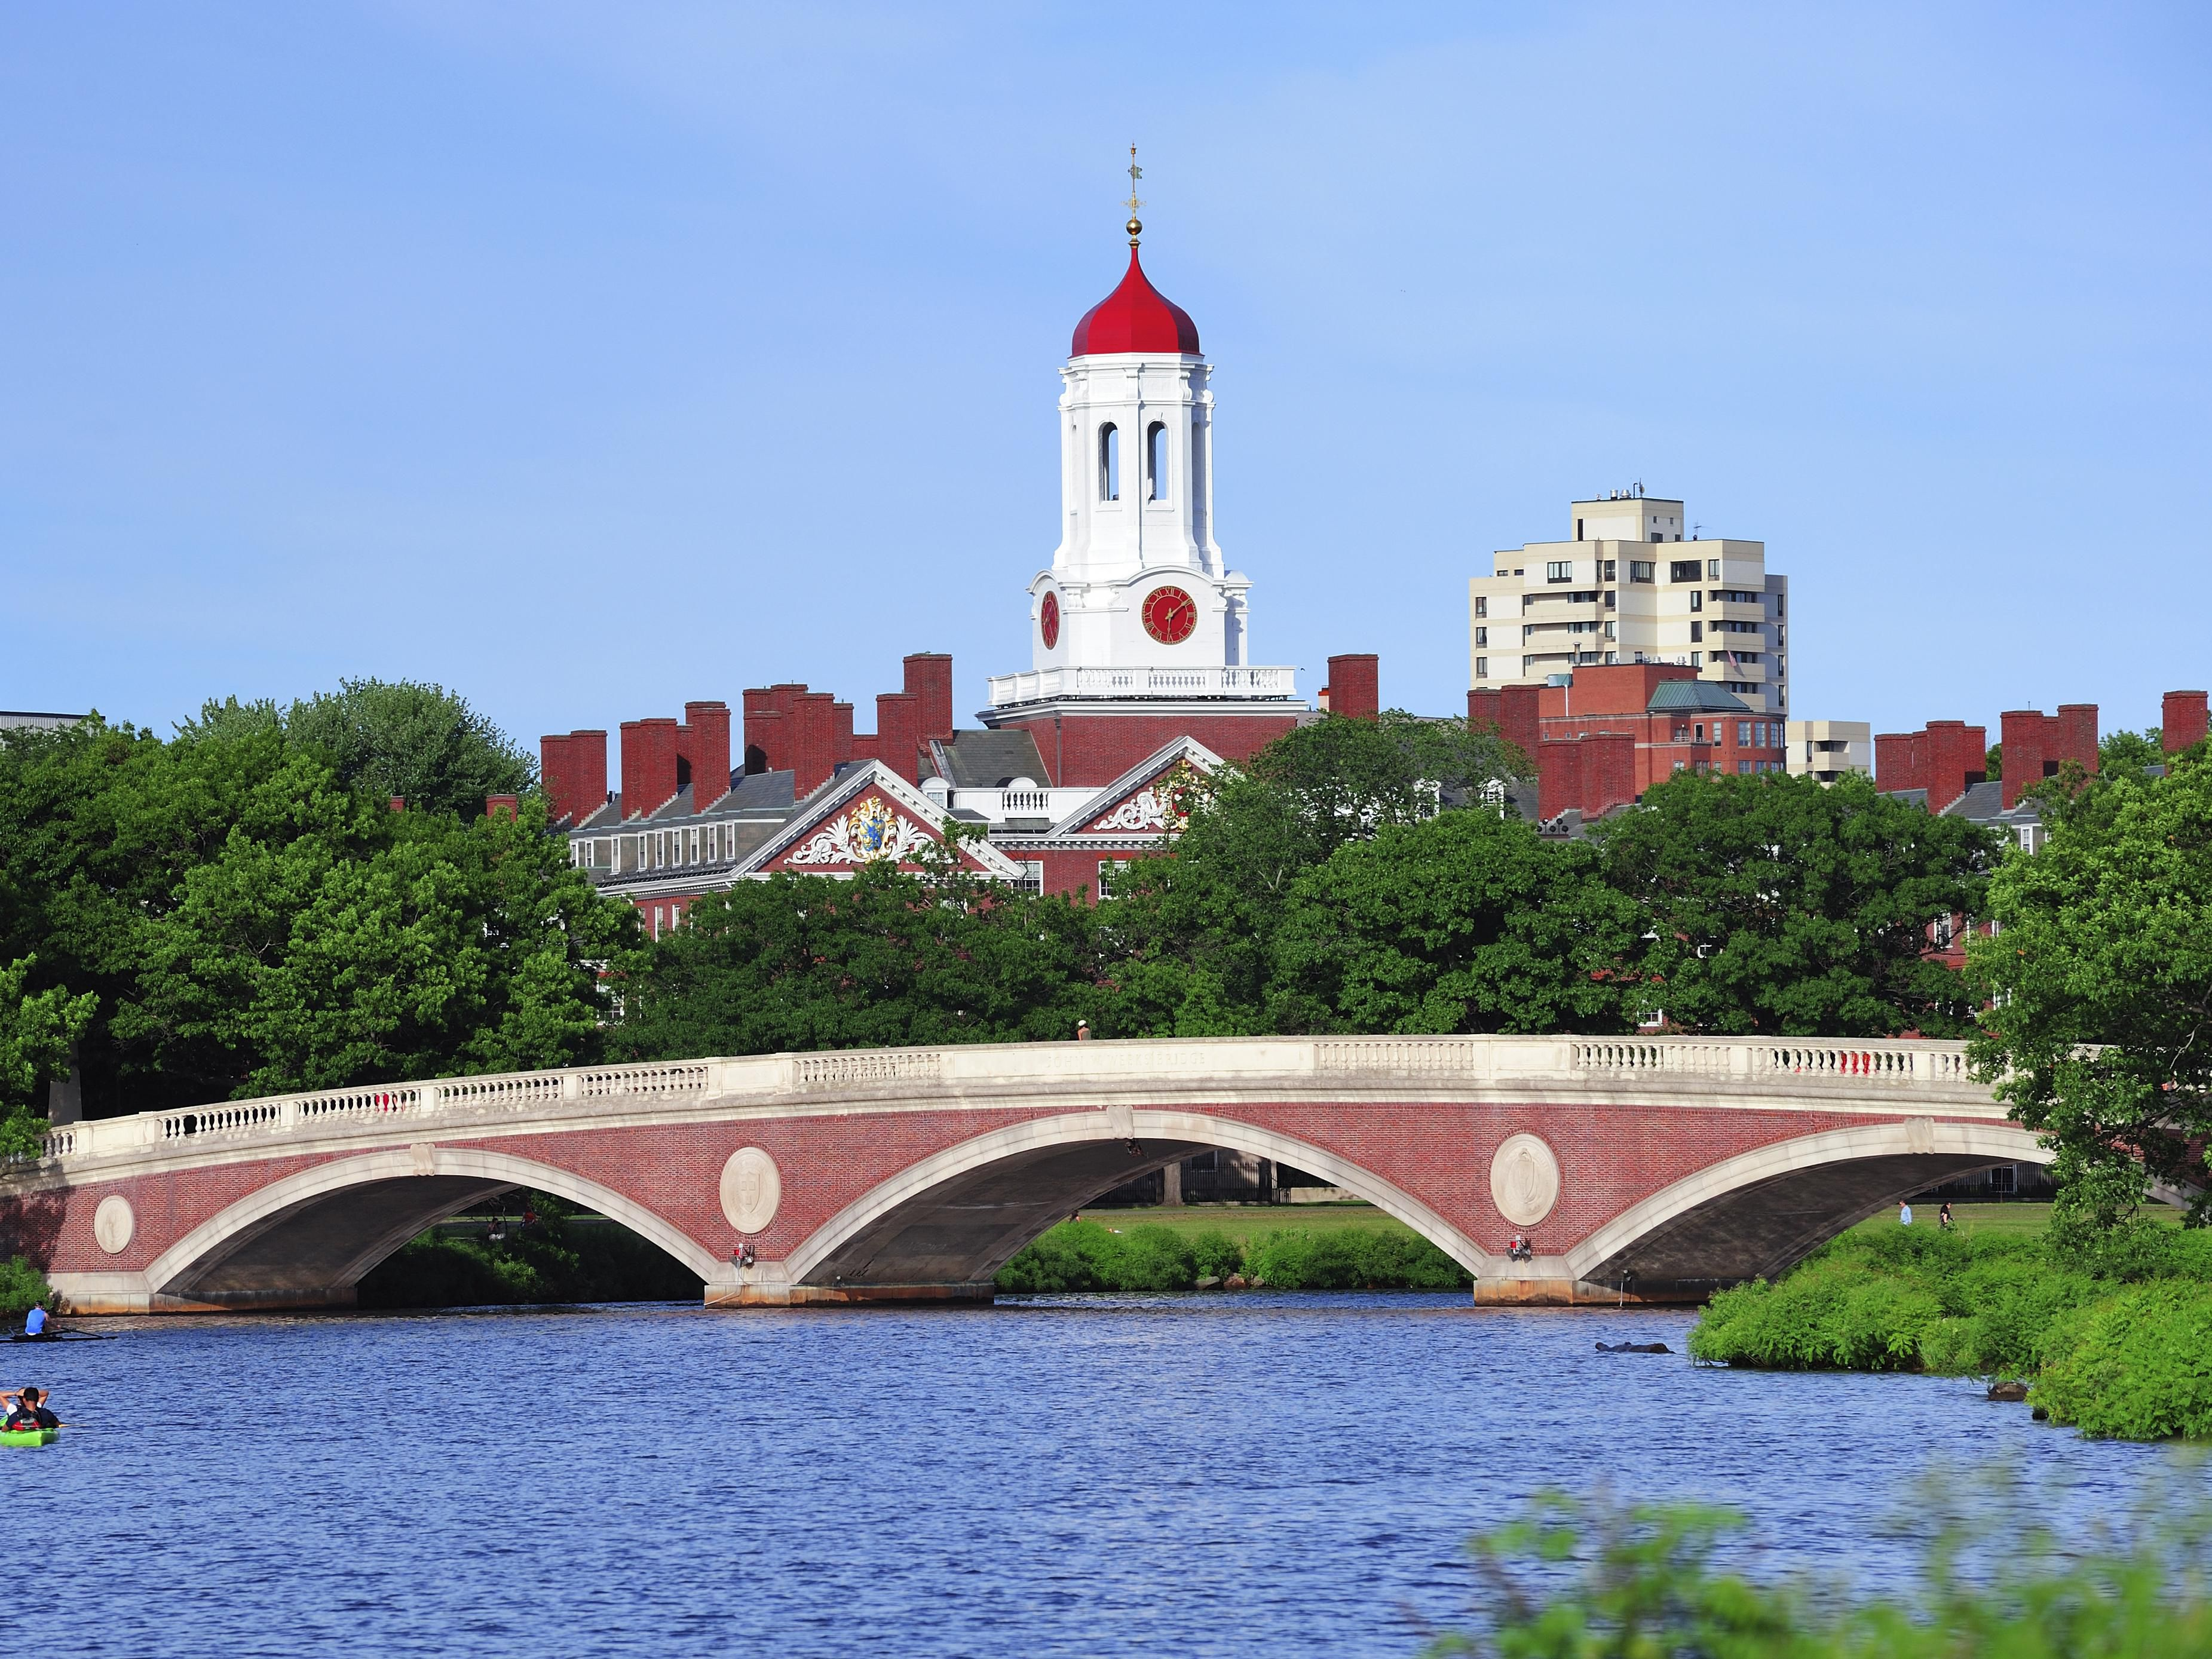 Harvard over the Charles River